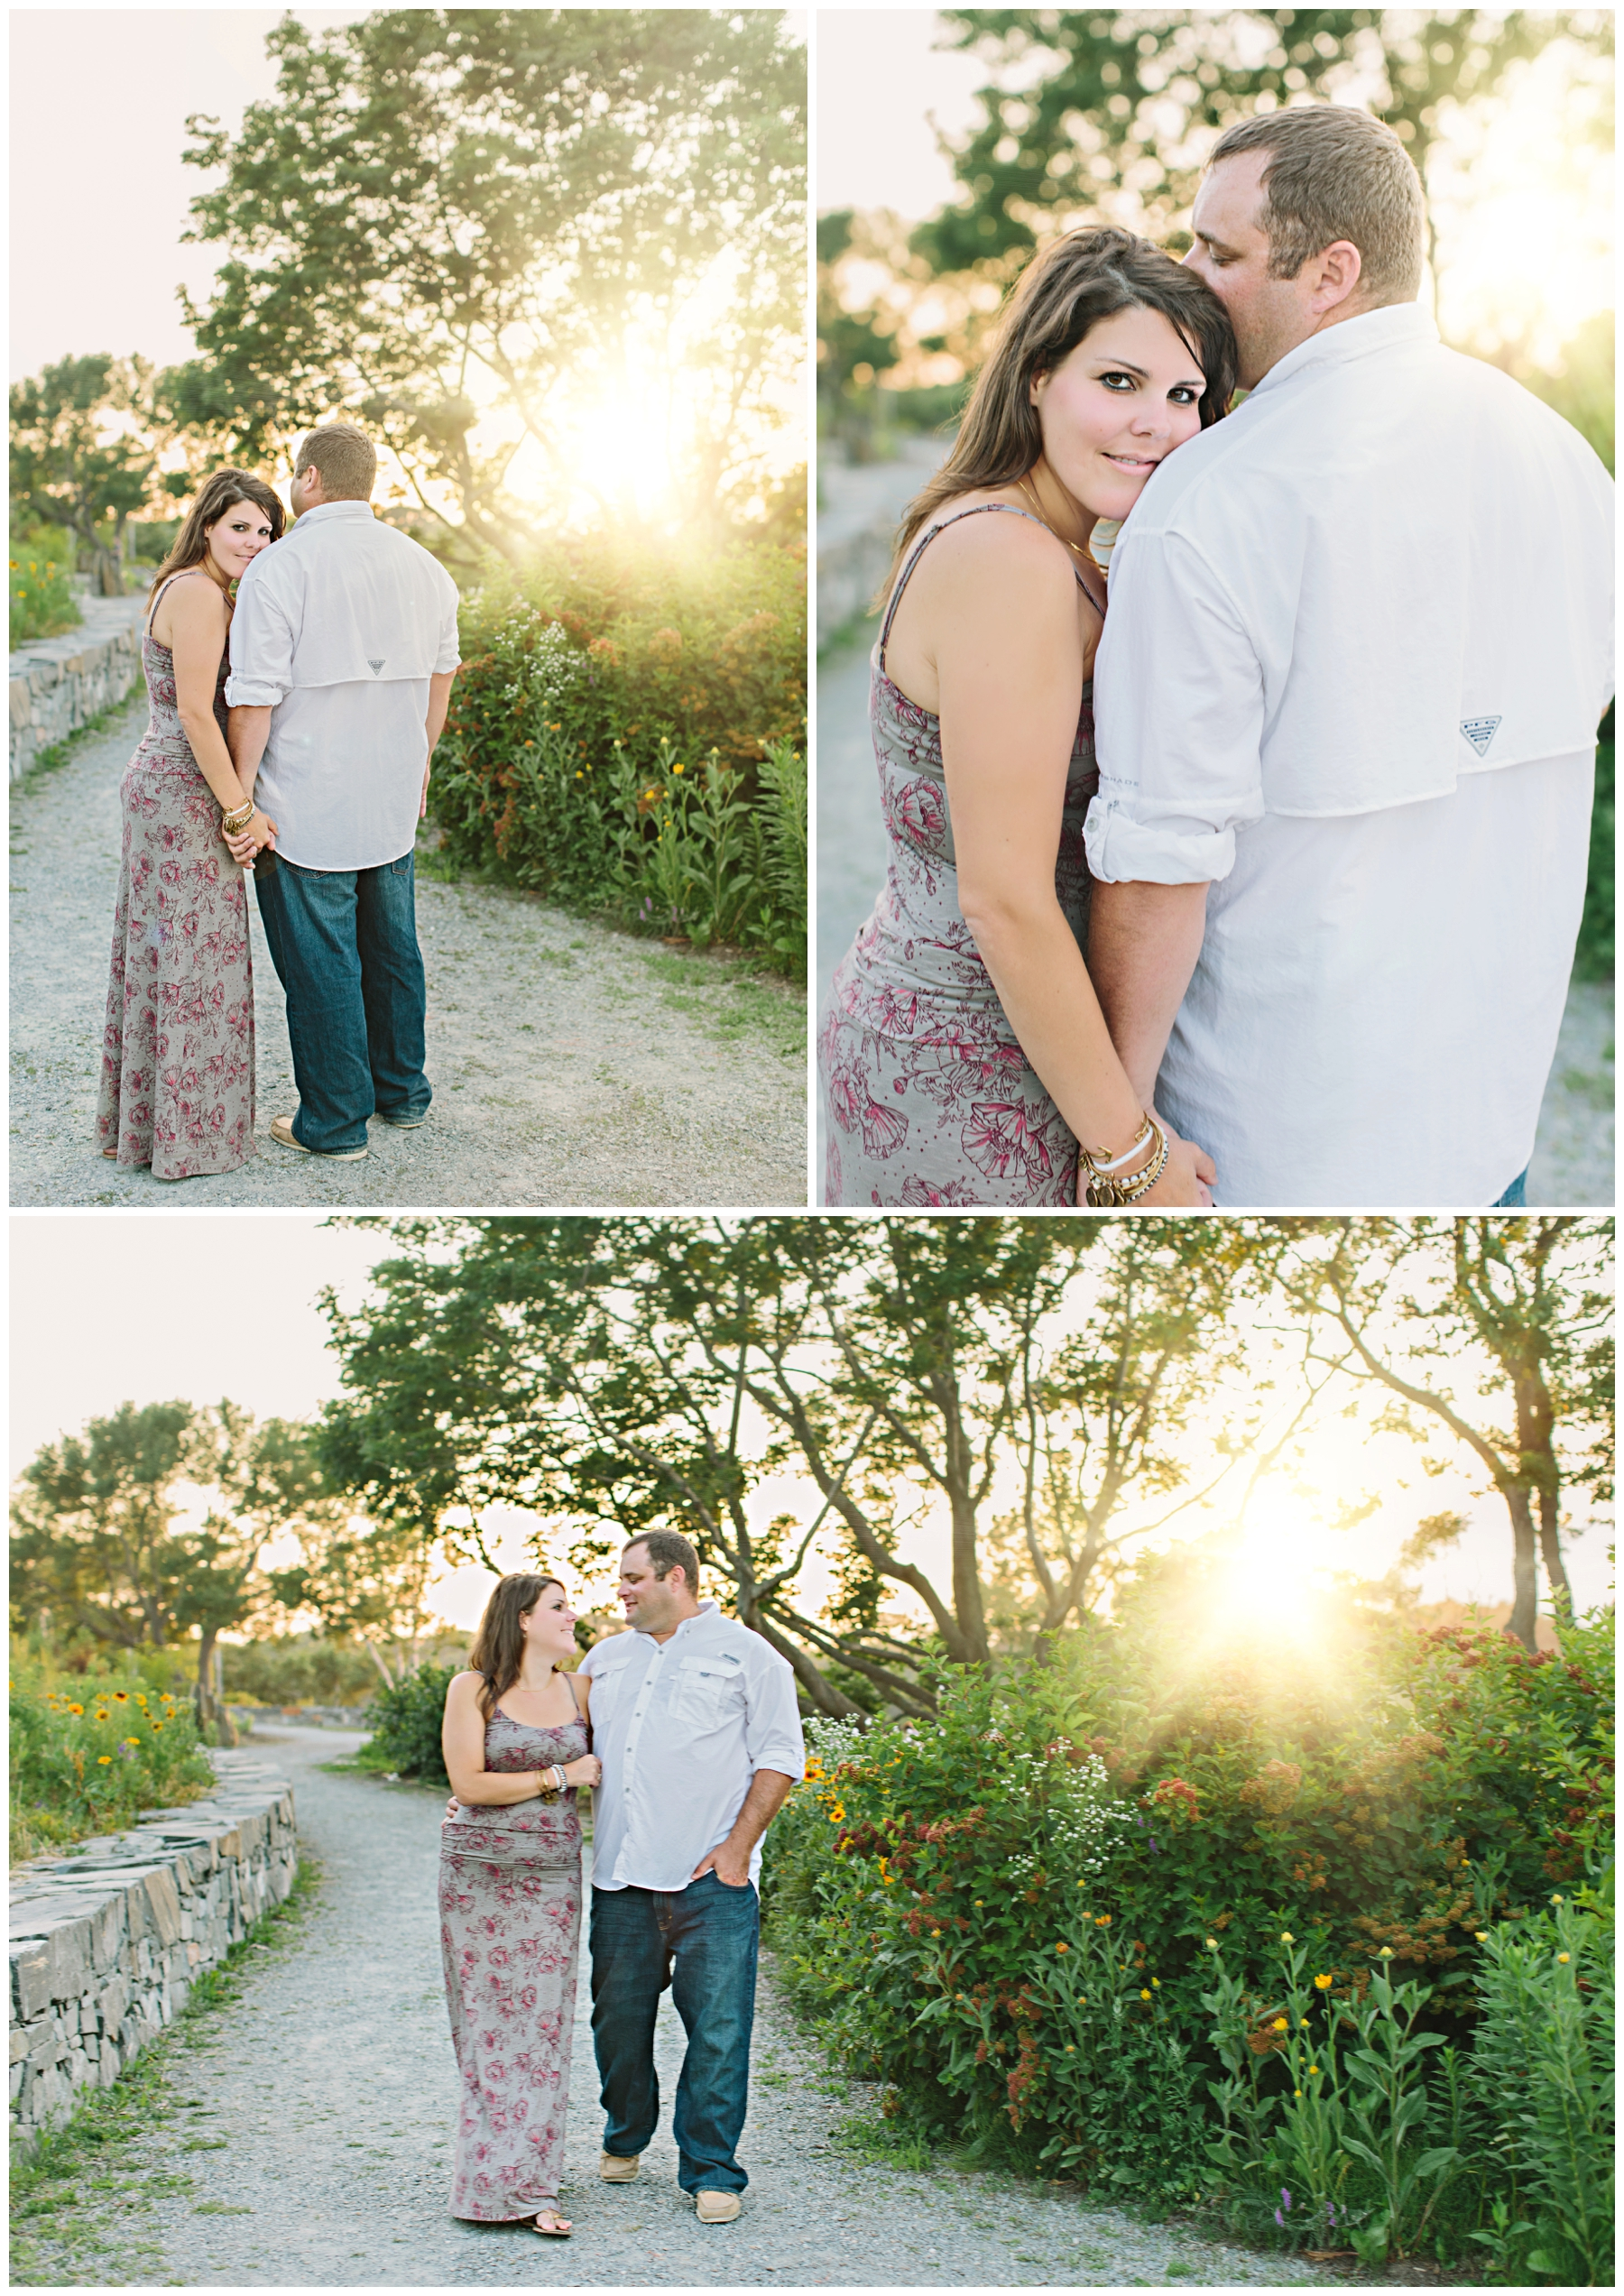 Maine_Photographer_Engagements_FortWilliams_PortlandHeadLight_lighthouse_coastal_seaside-018